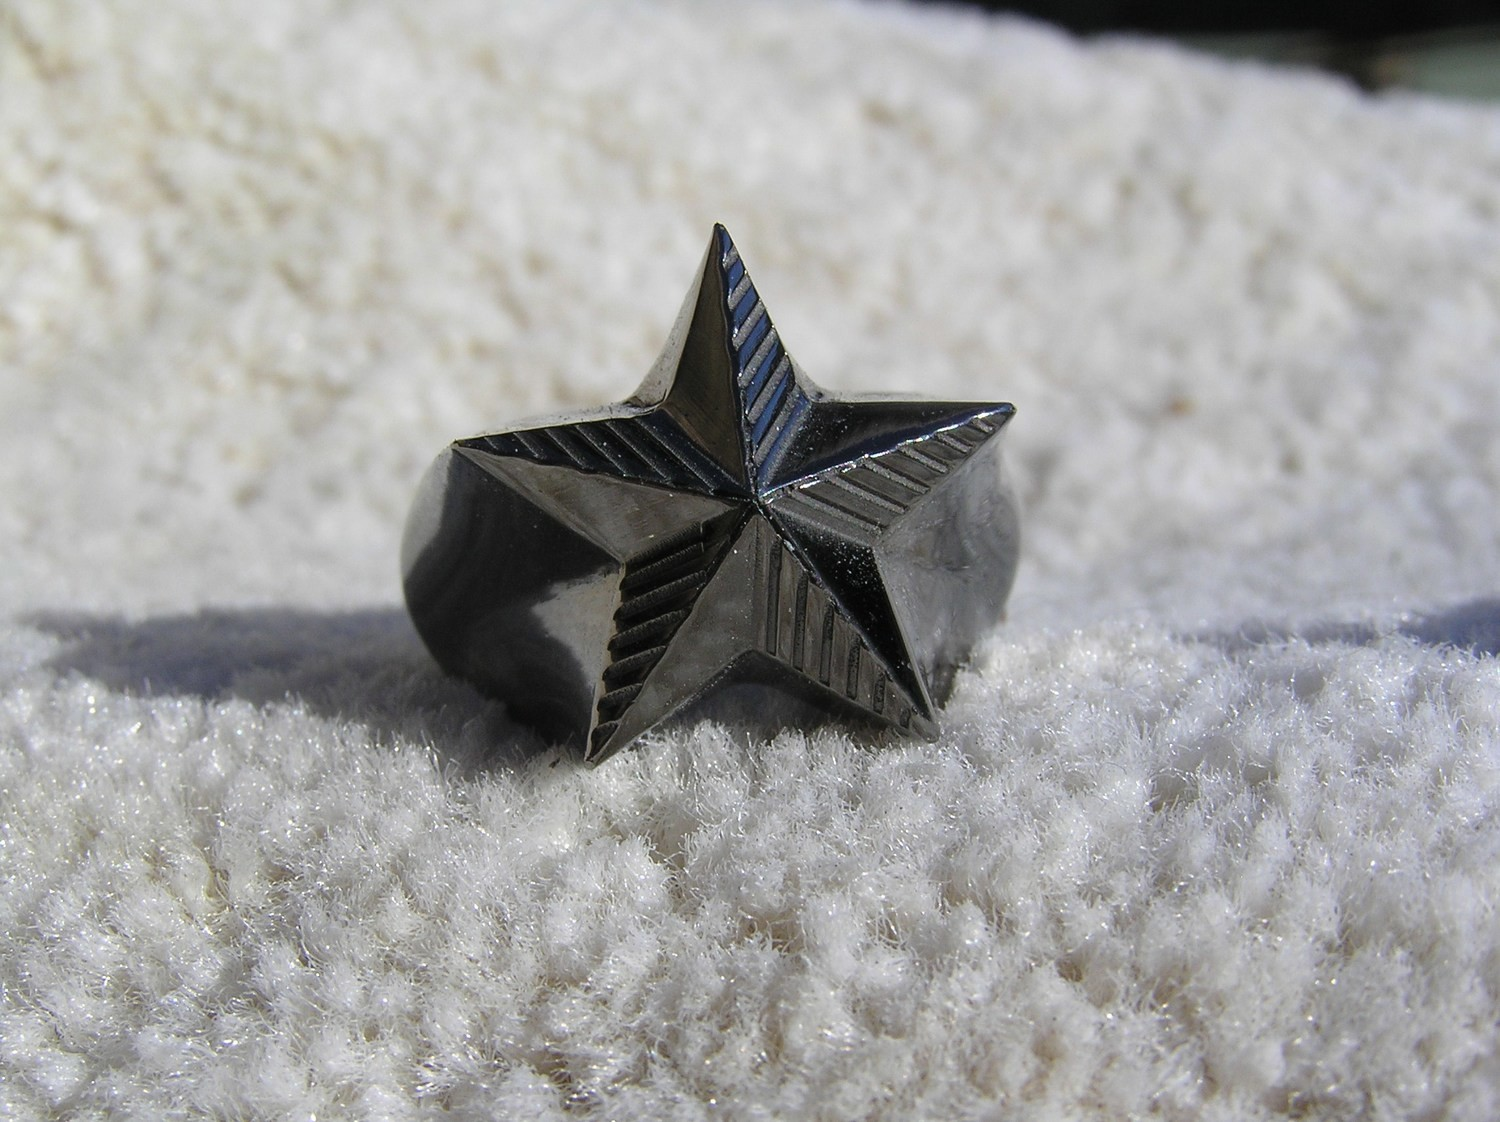 Black Nautical star ring